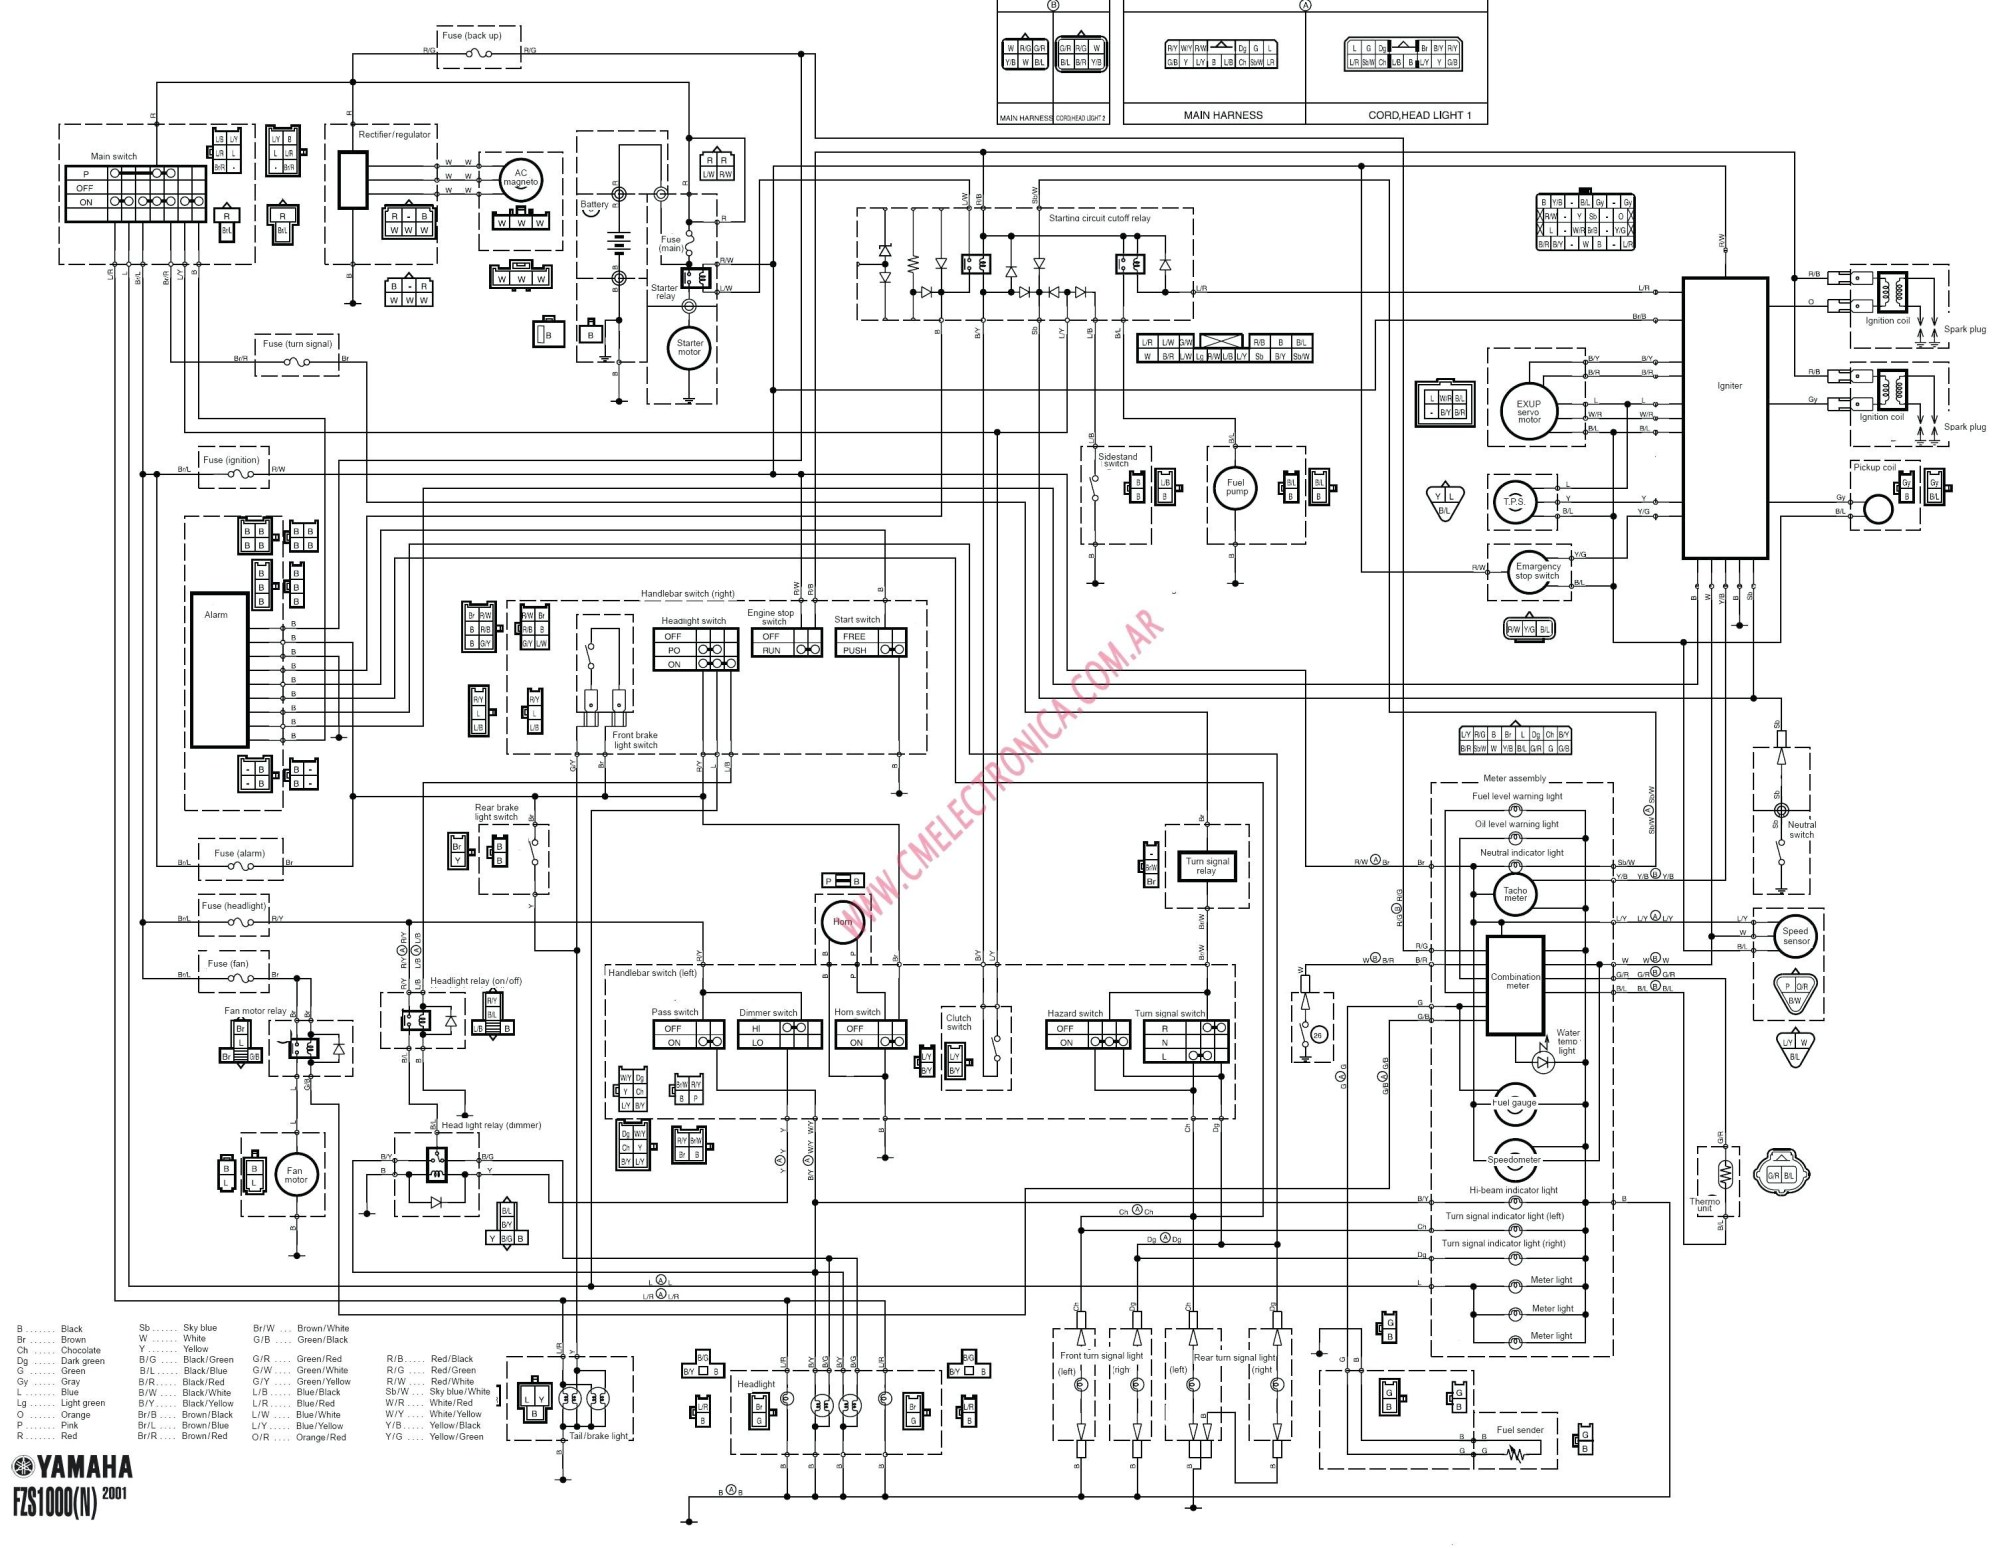 hight resolution of full size of 2002 yamaha kodiak 400 wiring diagram fortable grizzly ideas electrical fantastic templates